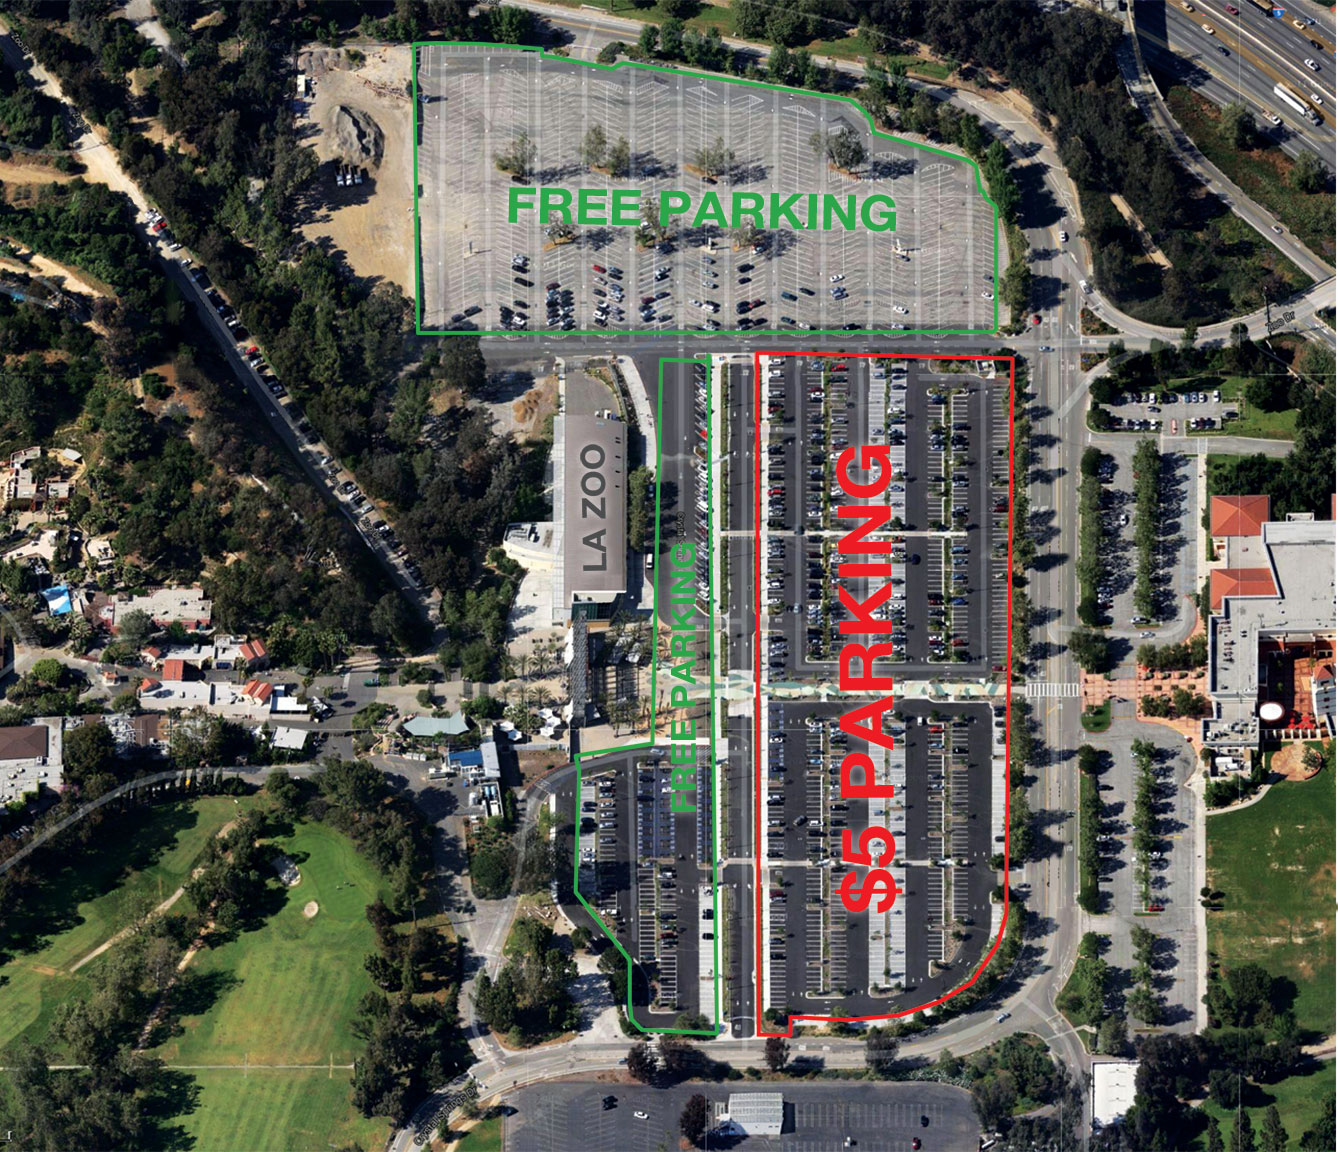 Keeping Griffith Park Free With 5 Parking